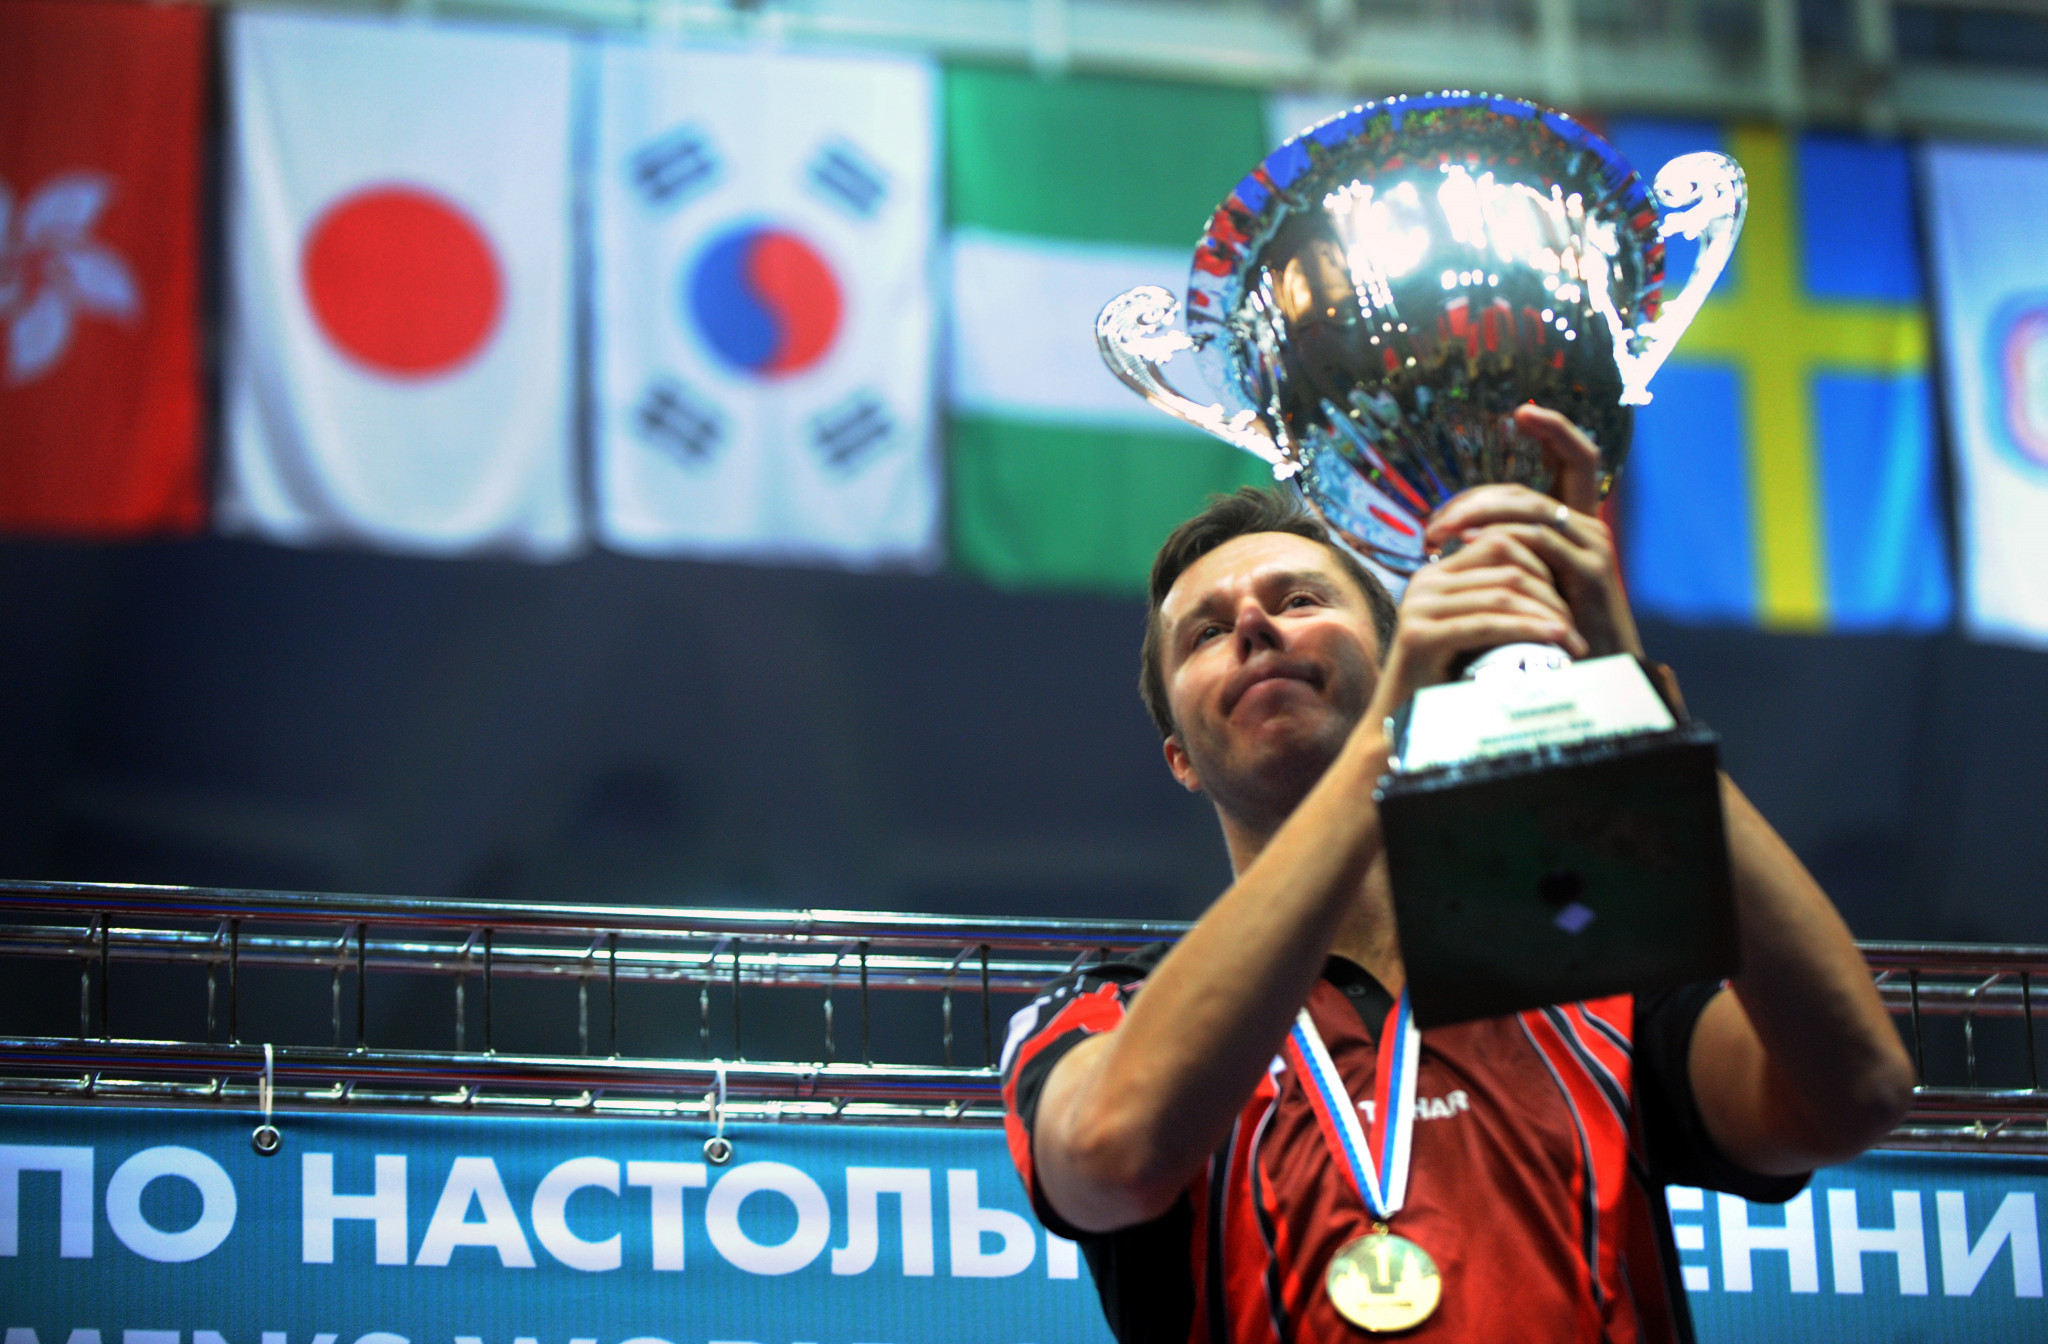 The top eight athletes at the end of the Oceania tour will have a chance to compete in the ITTF World Cup ©Getty Images